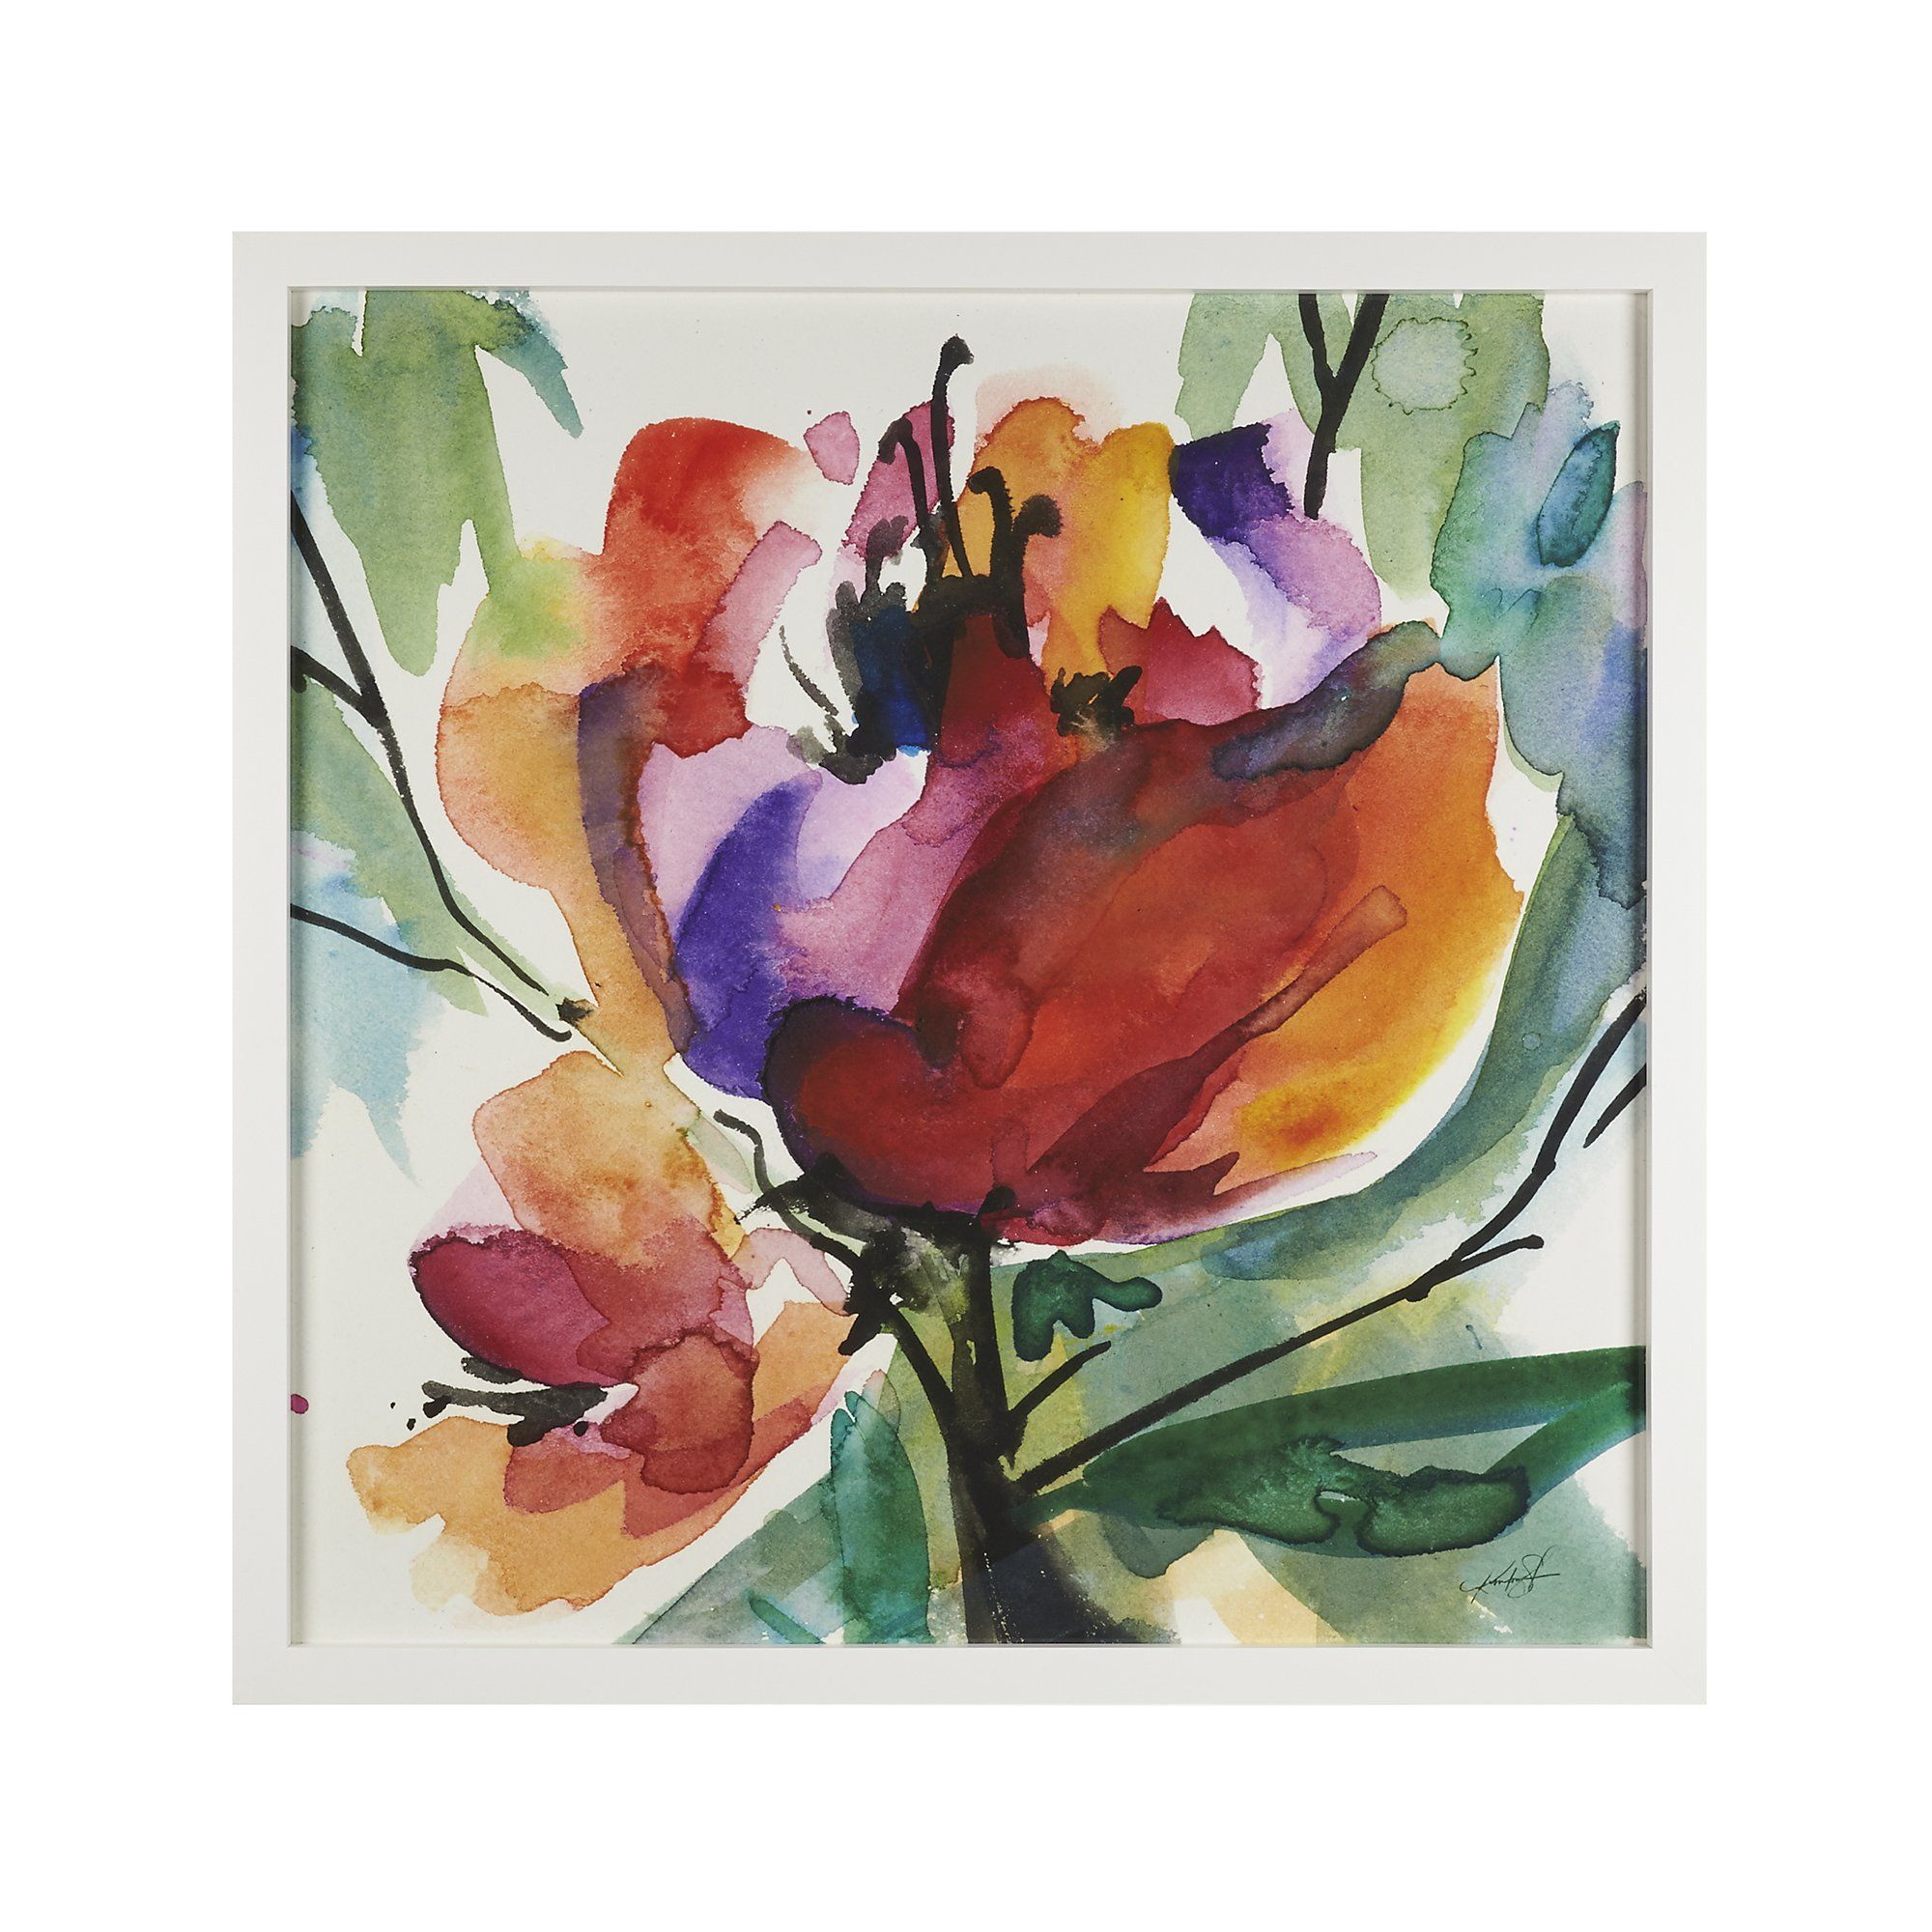 Serendipity Print Floral Watercolor Abstract Flowers Abstract